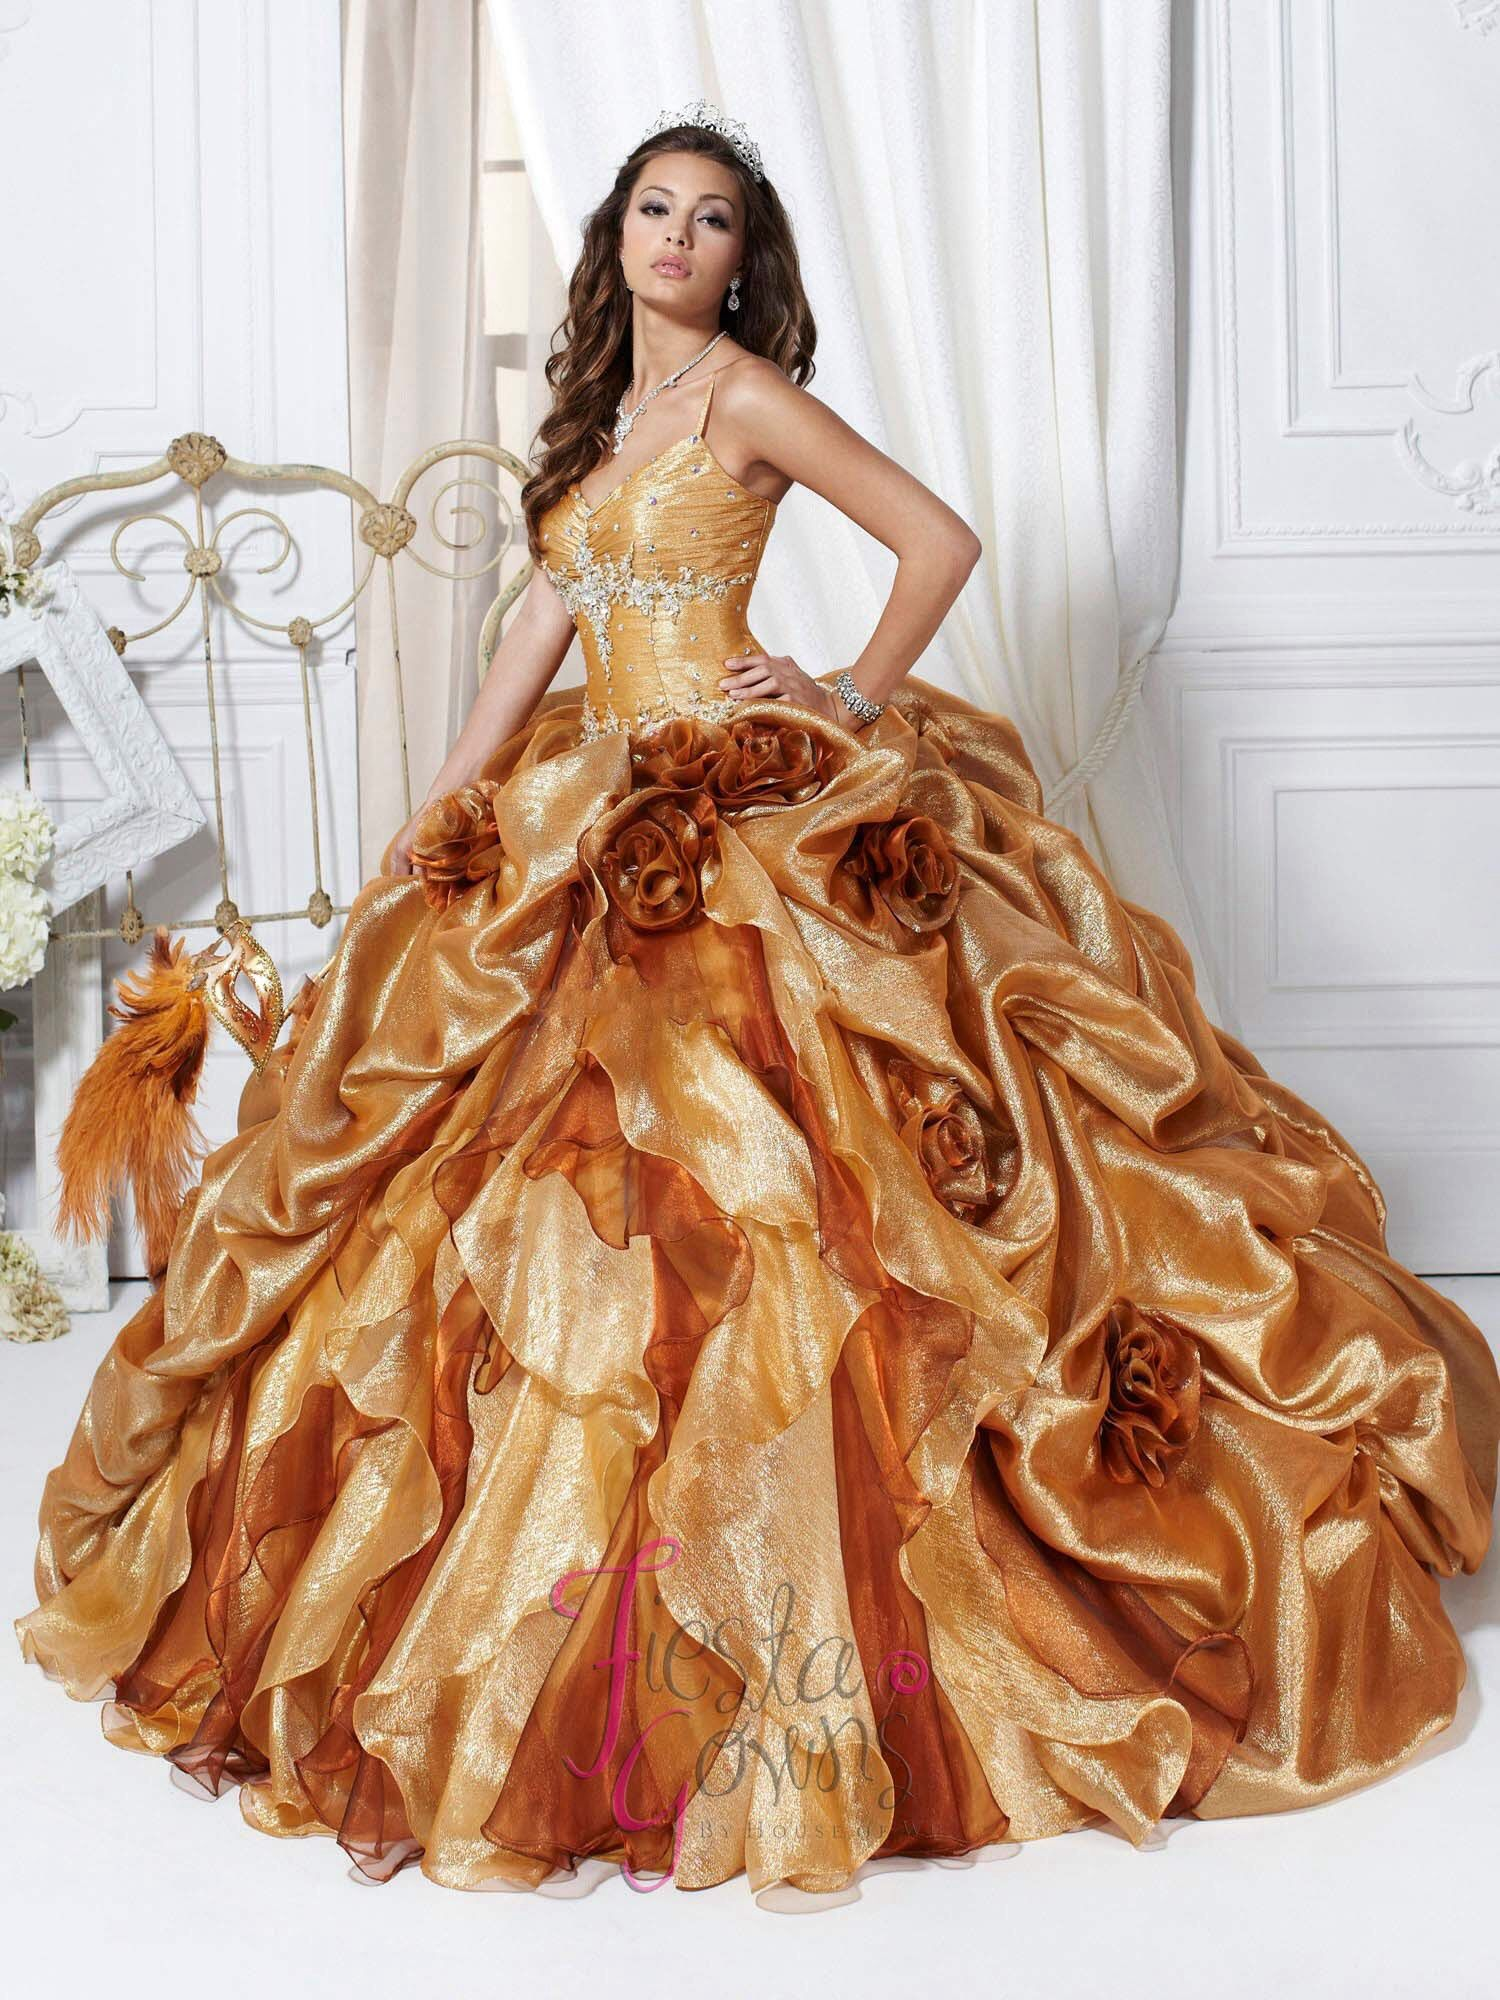 2c305bc49a Ball gown~ reminds me of Belle   ) I don t know how easy it is to move  around thought lol